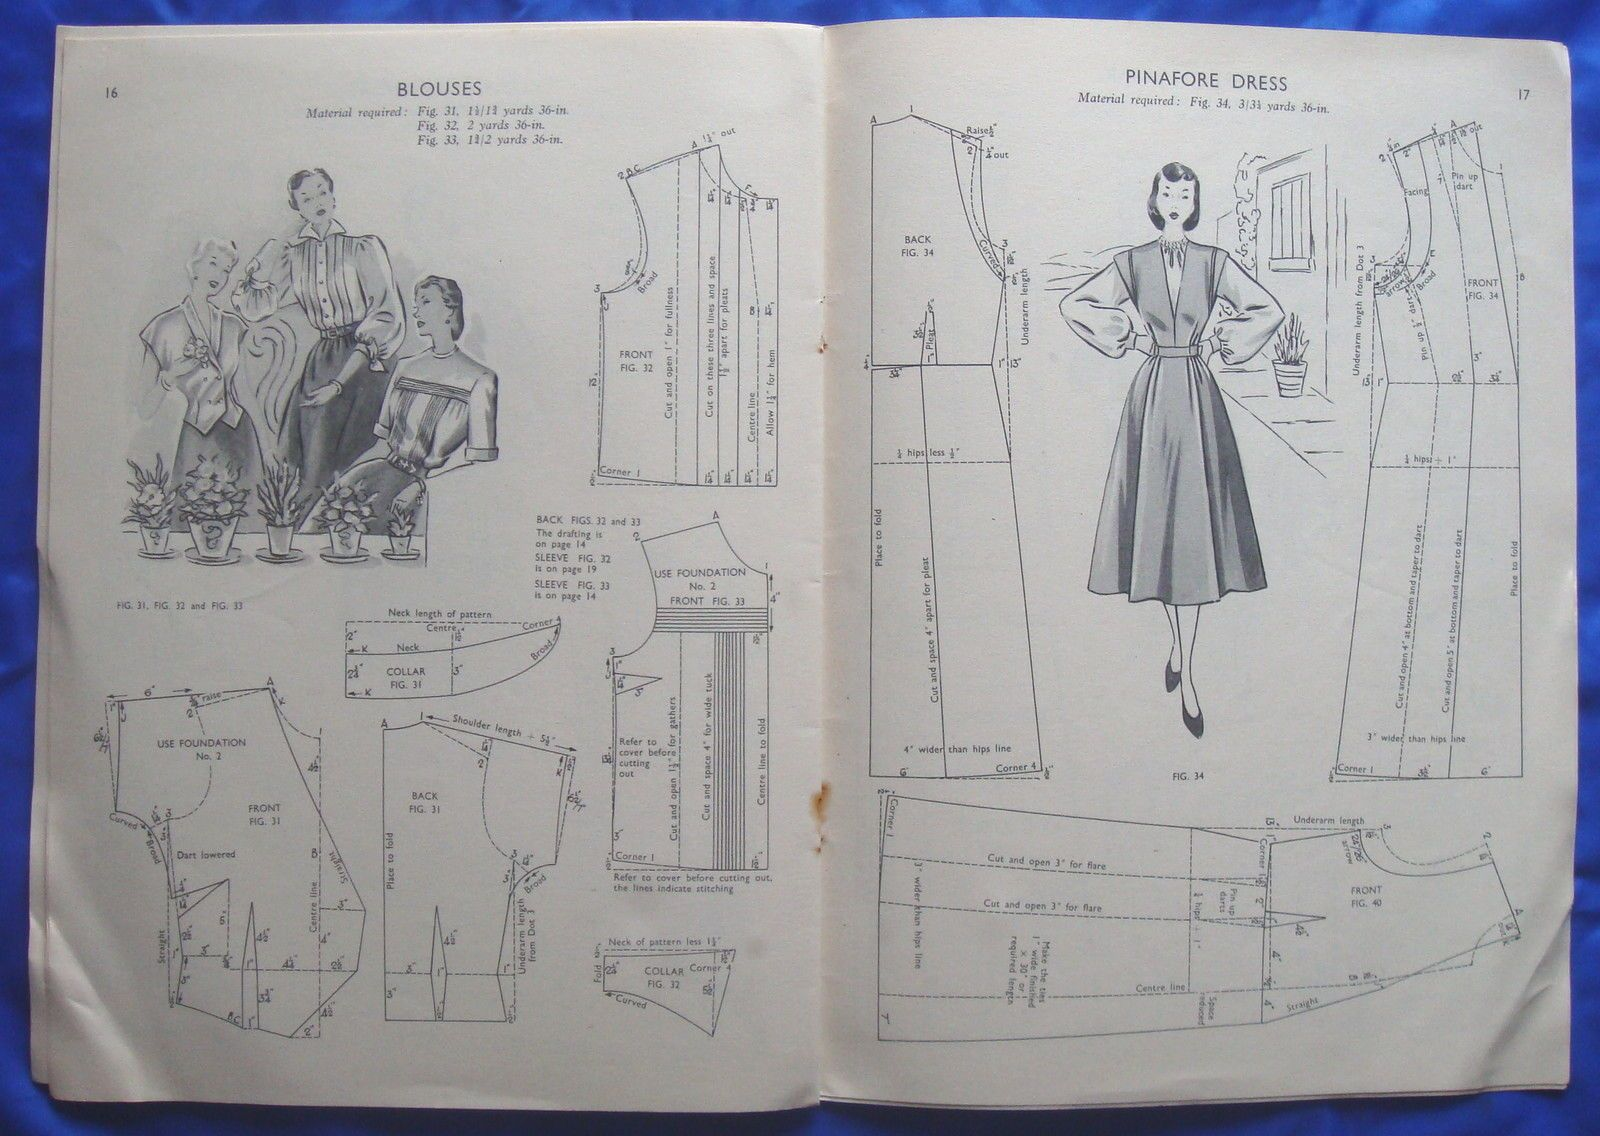 Vintage haslam system of dresscutting drafting system sewing vintage haslam system of dresscutting drafting system sewing pattern book no9 jeuxipadfo Image collections